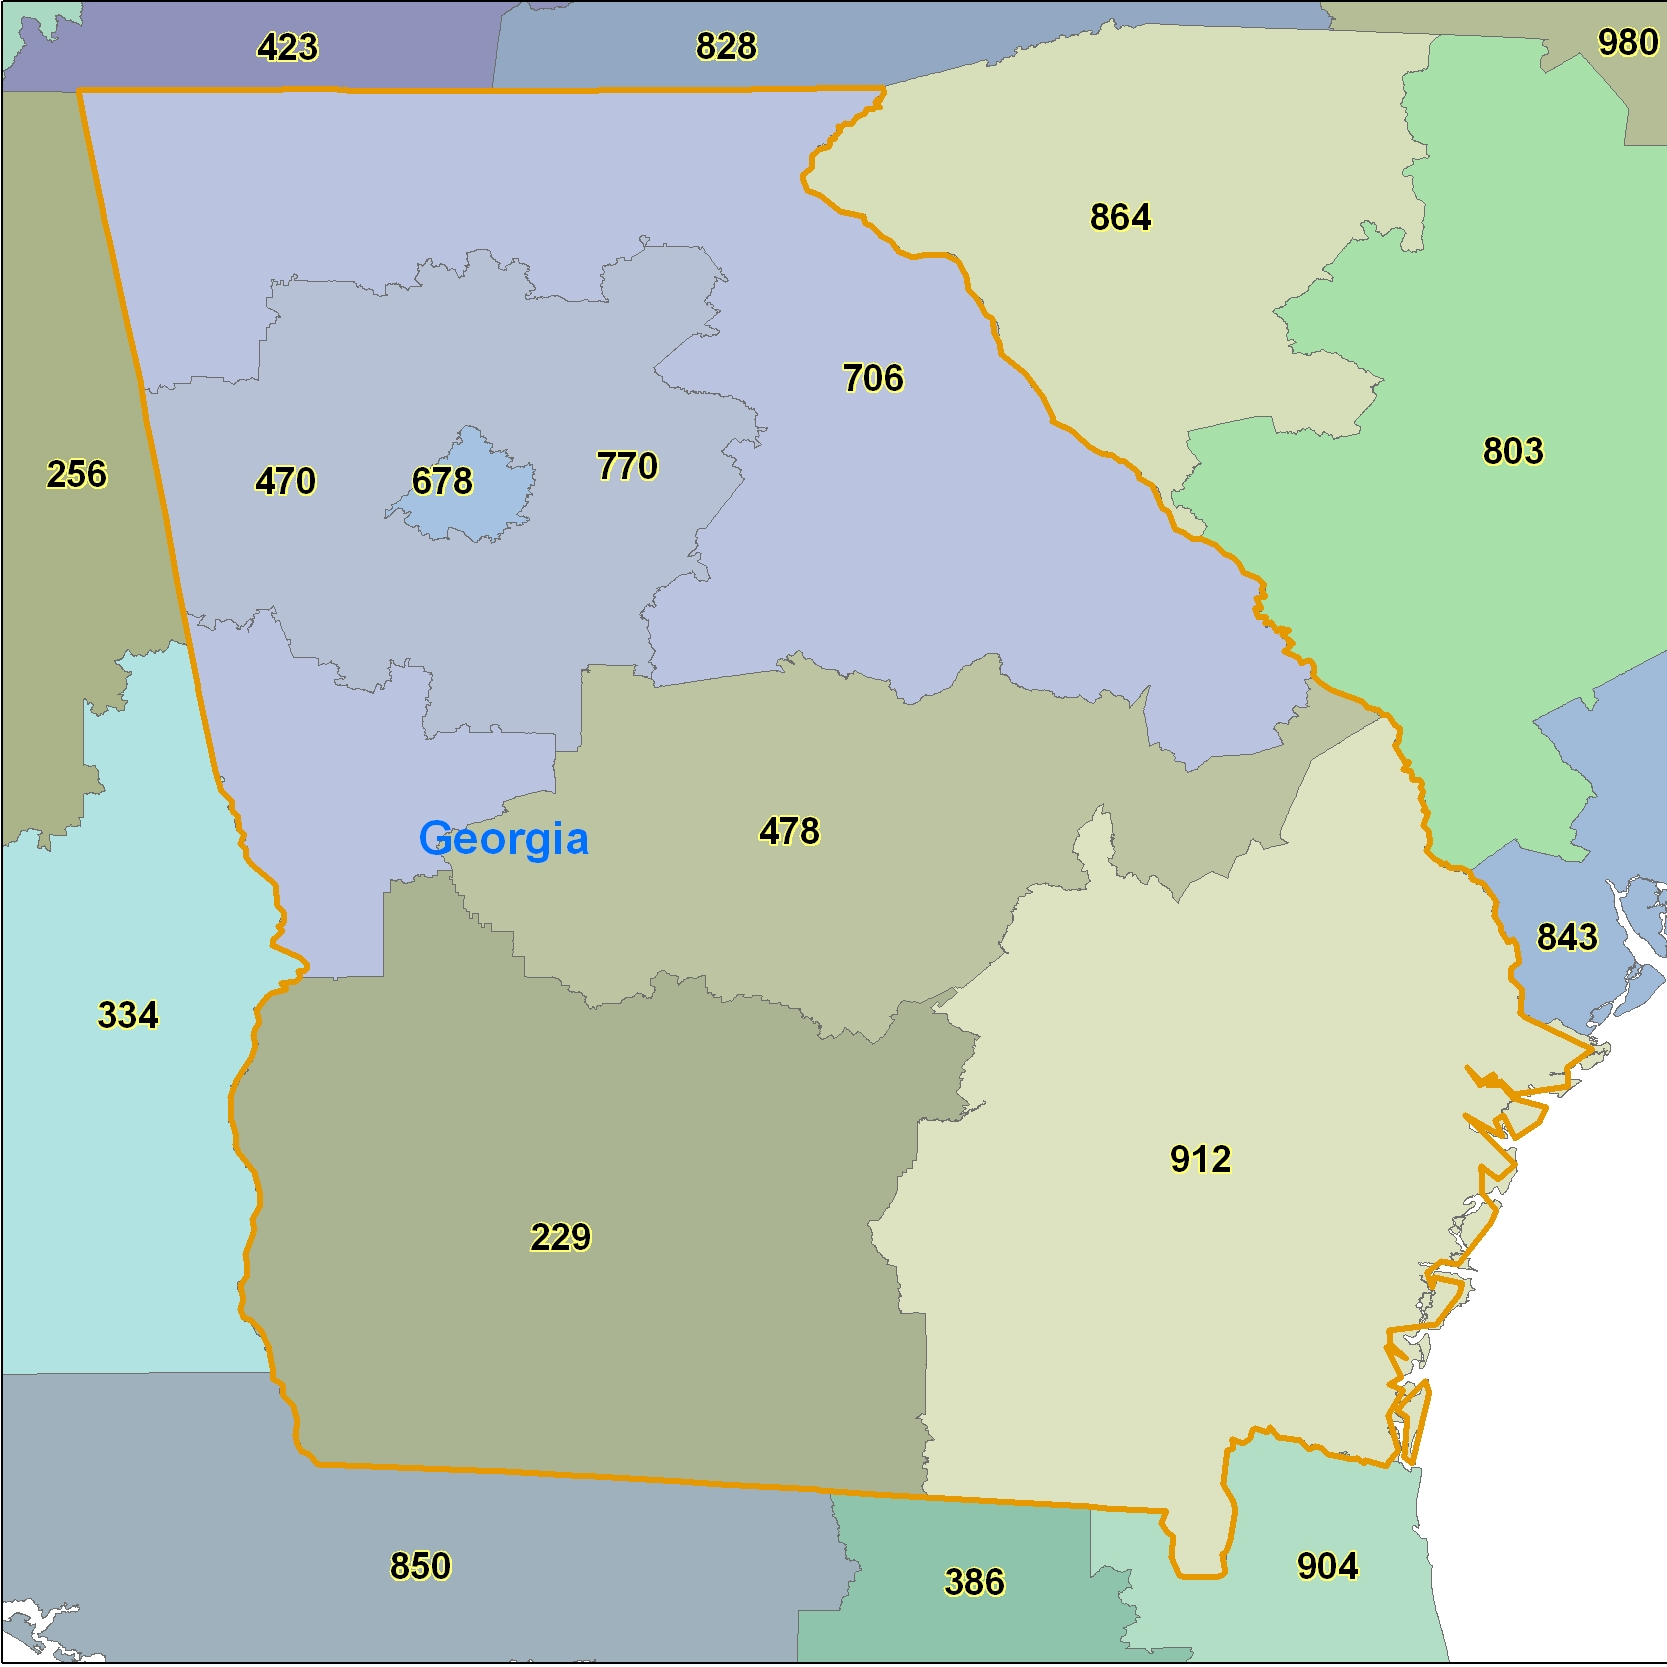 Georgia Area Code Maps Georgia Telephone Area Code Maps Free - What area code is 470